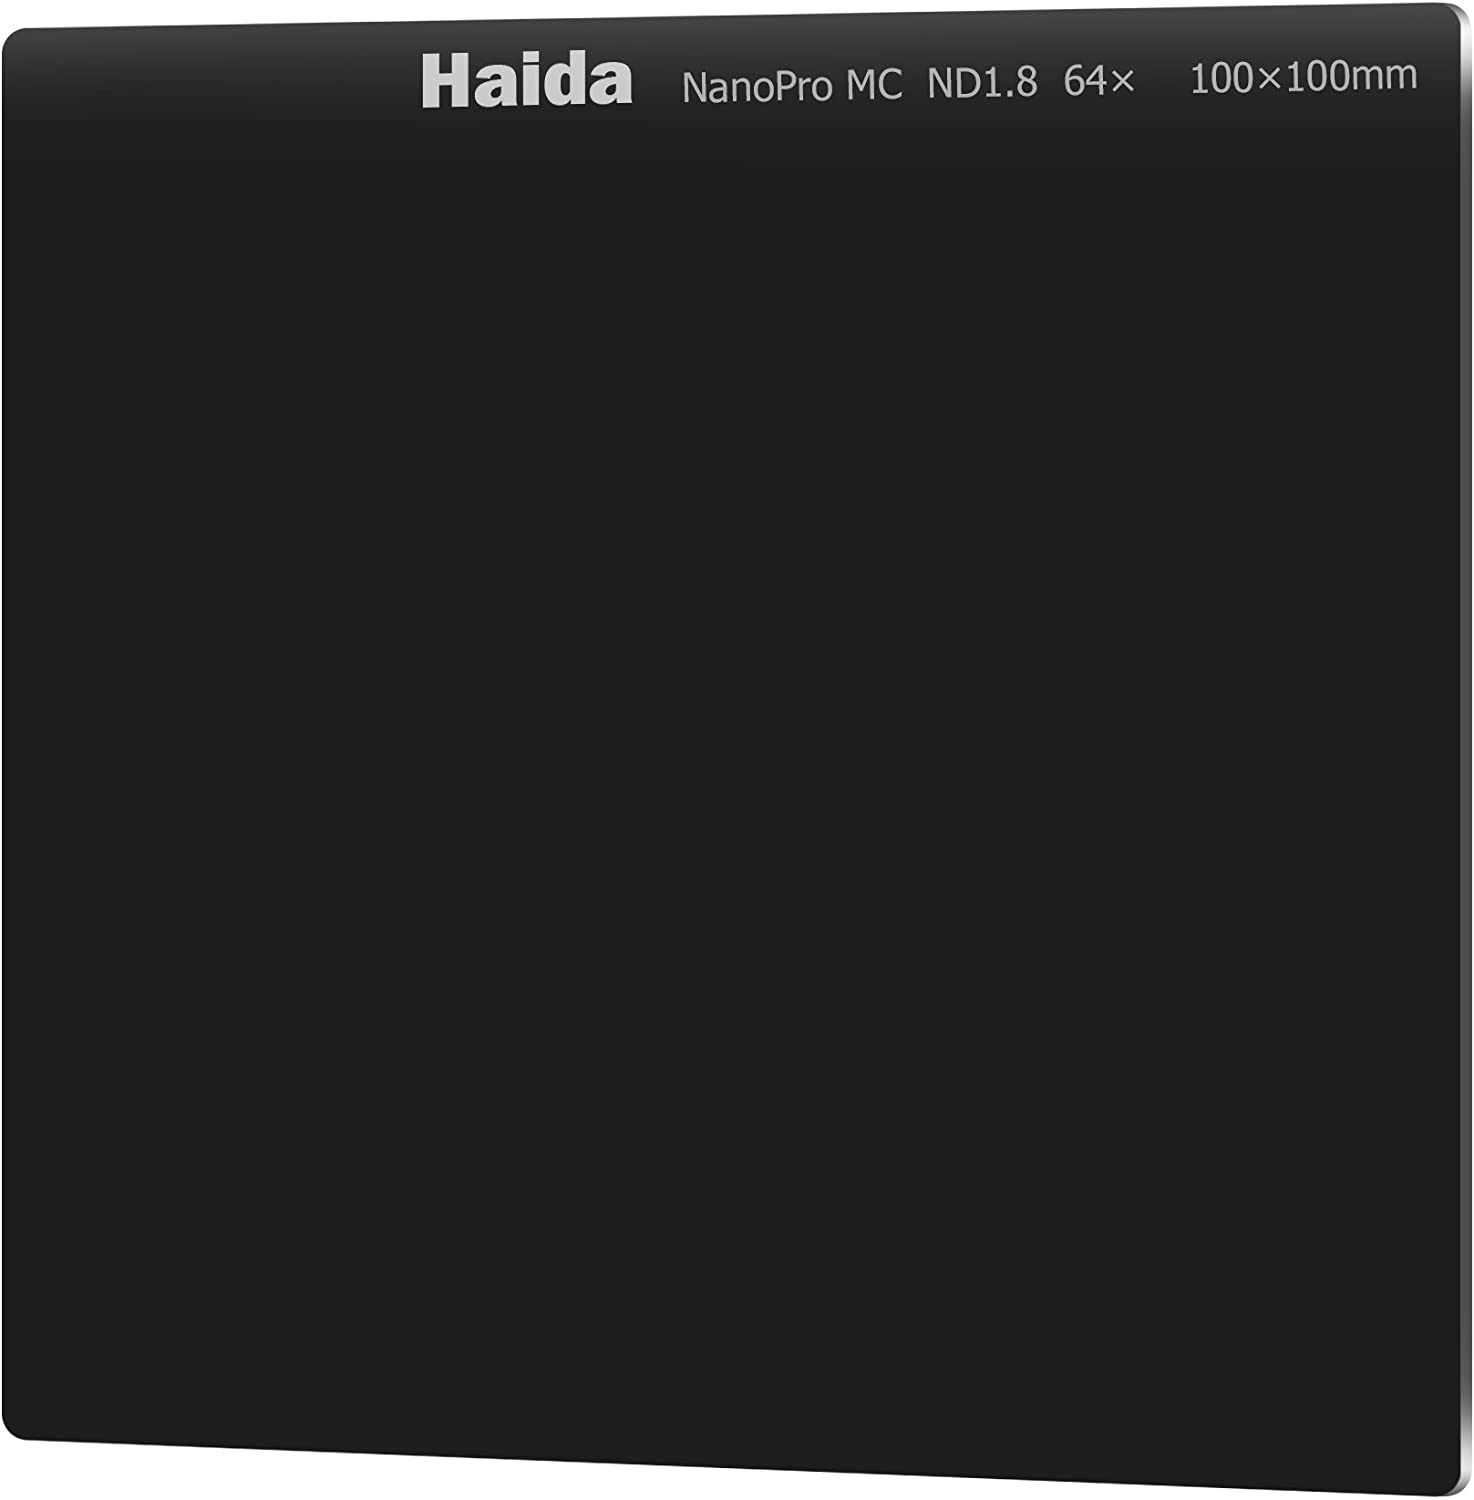 Haida NanoPro ND1.8 (64x) 6-Stop Multicoated Filter 100x100mm